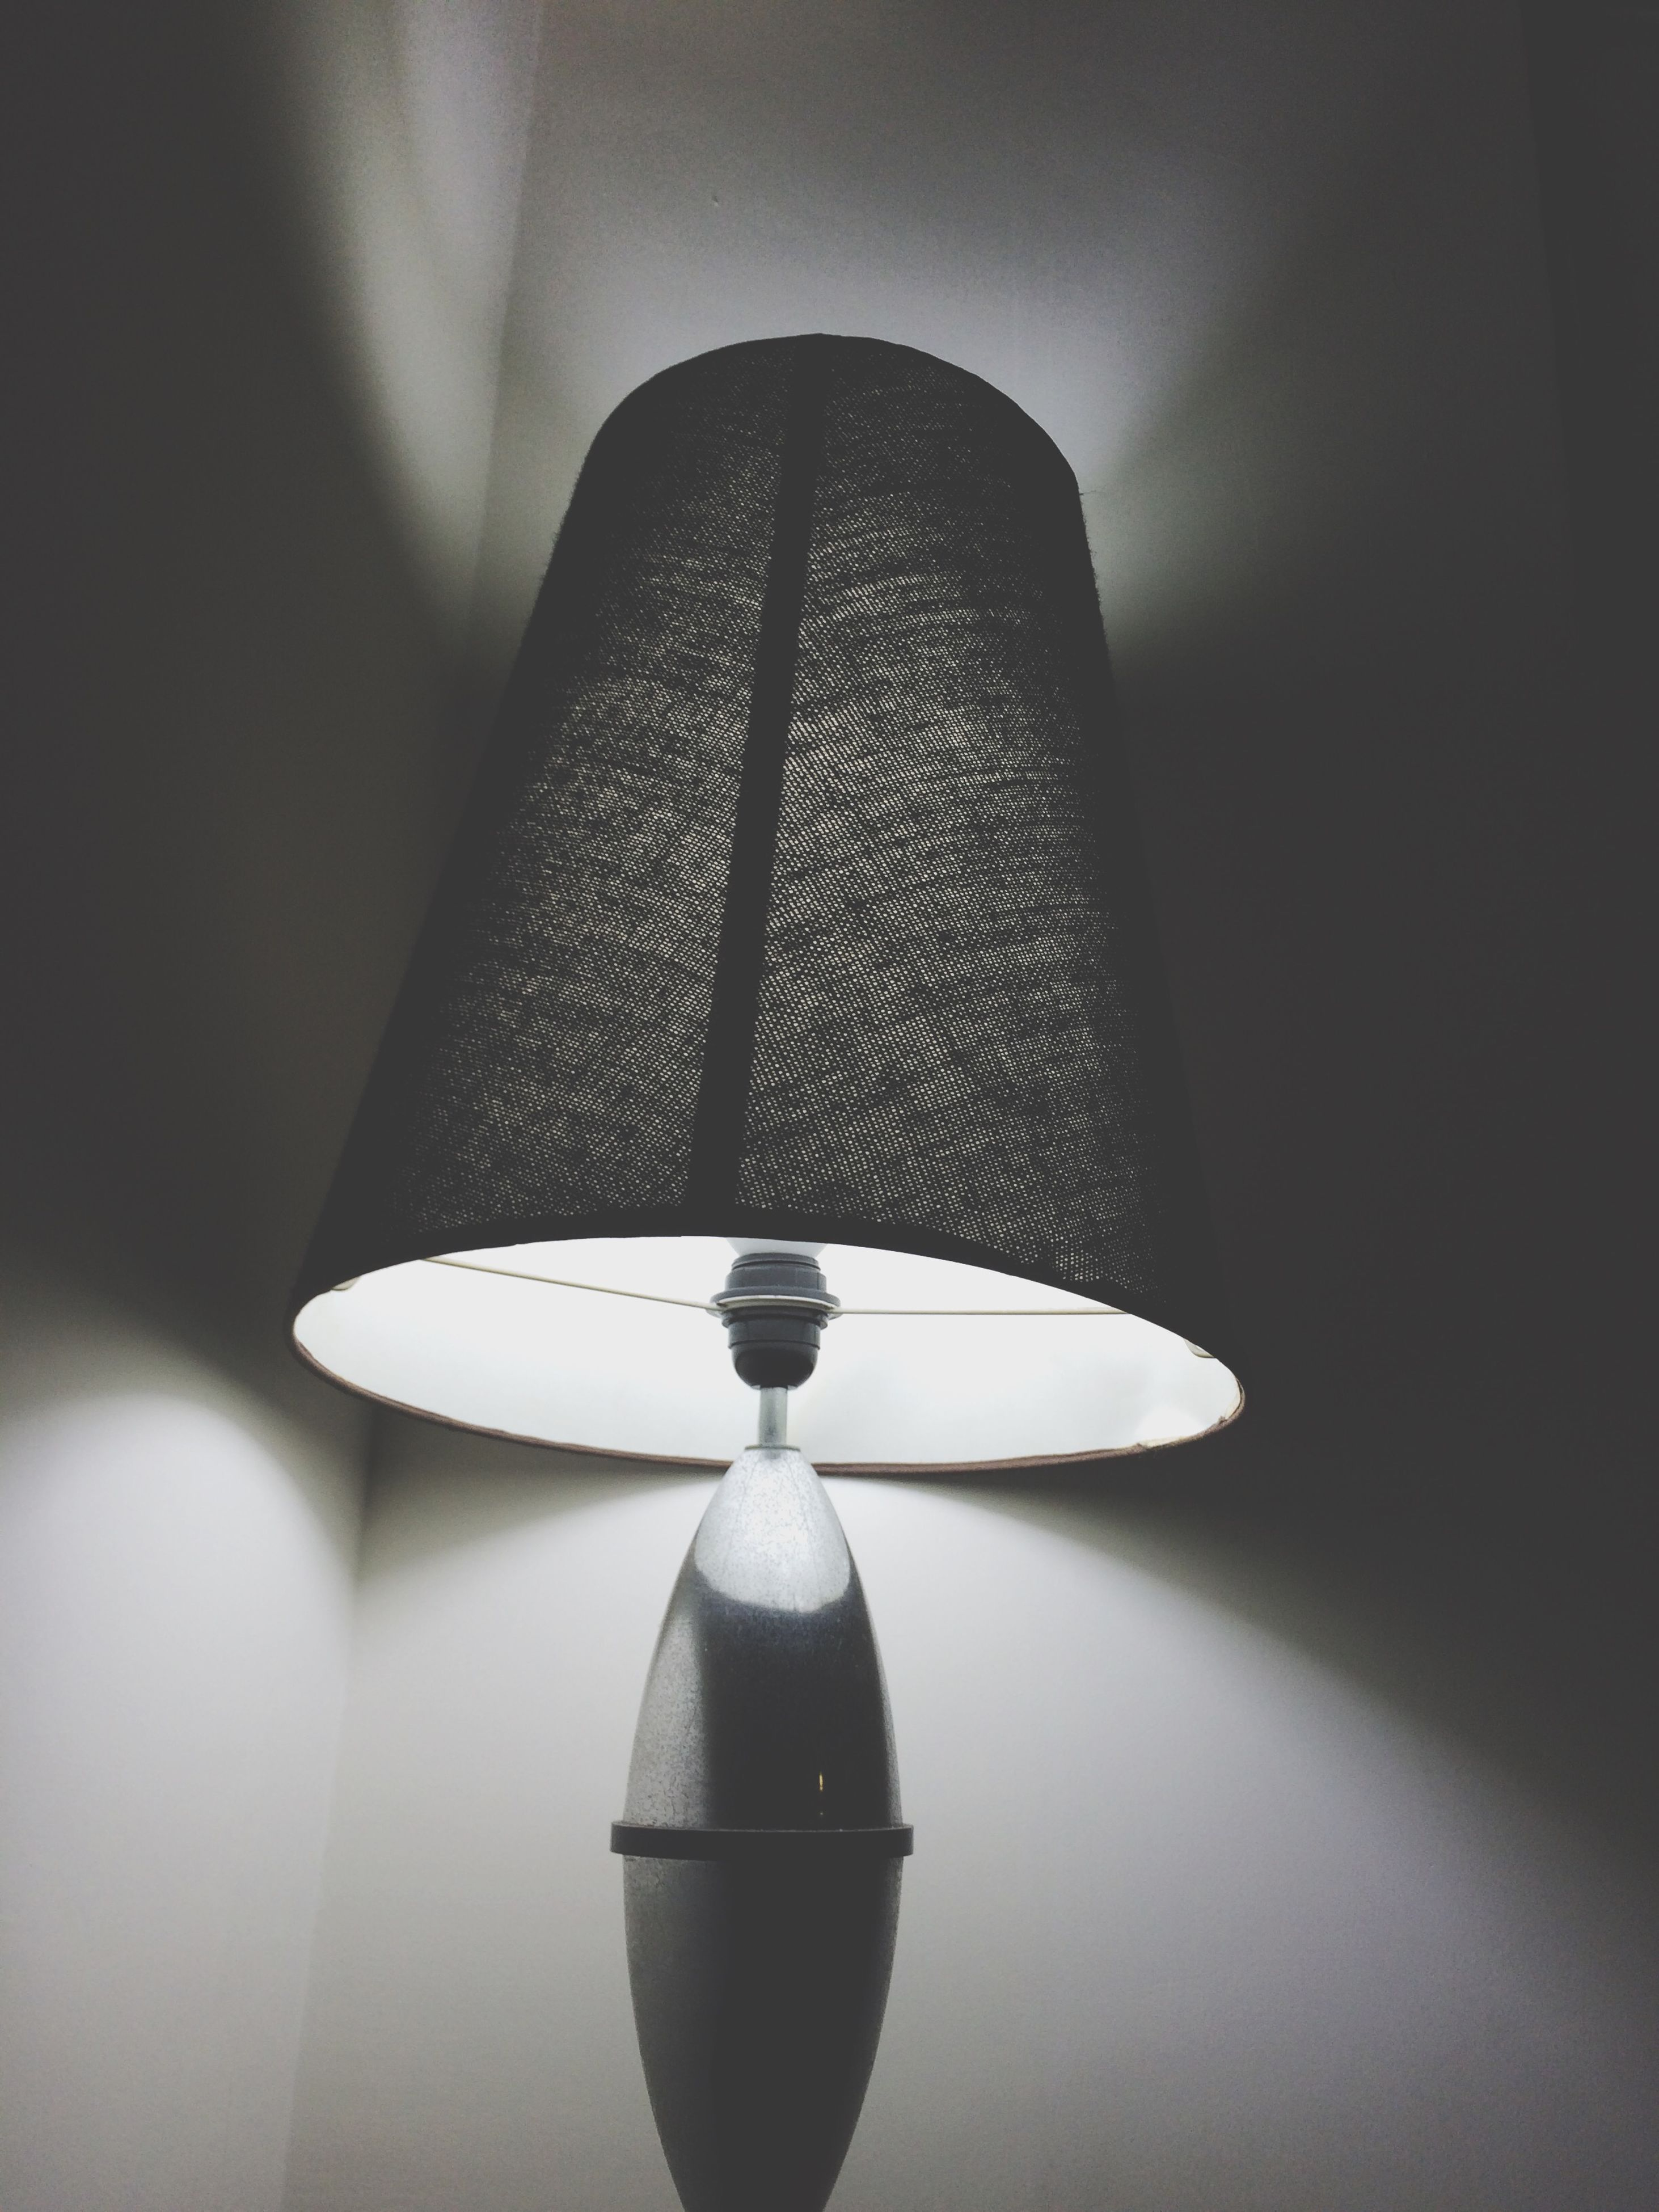 indoors, lighting equipment, illuminated, low angle view, ceiling, electricity, electric lamp, electric light, hanging, lamp, light bulb, architecture, home interior, built structure, glowing, light - natural phenomenon, pendant light, decoration, no people, modern